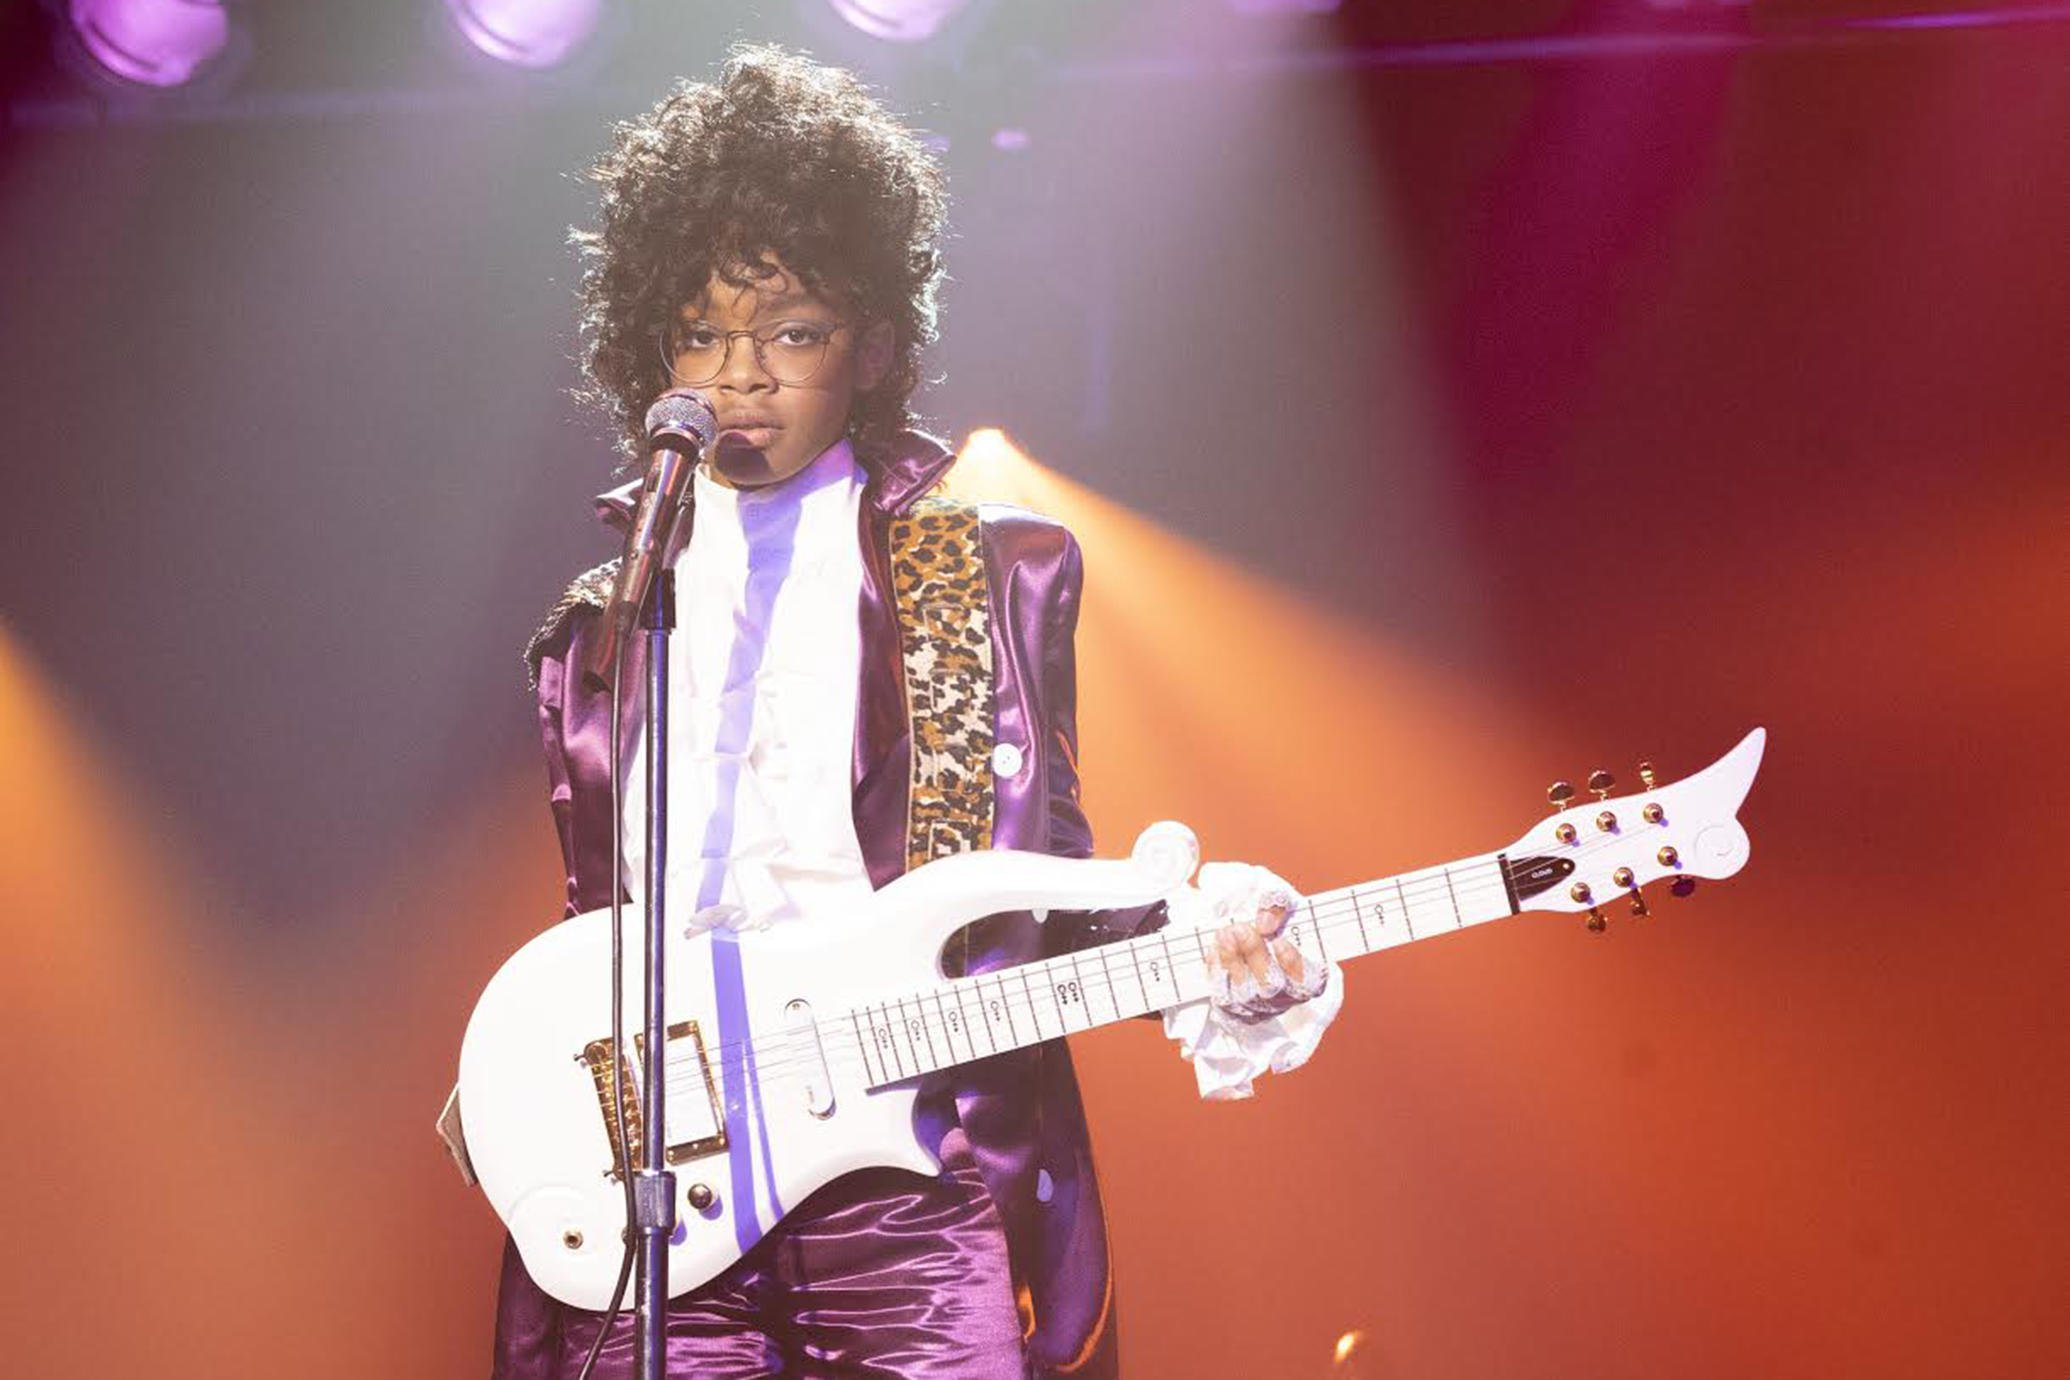 The Prince tribute episode of Black-ish gave everyone the feels